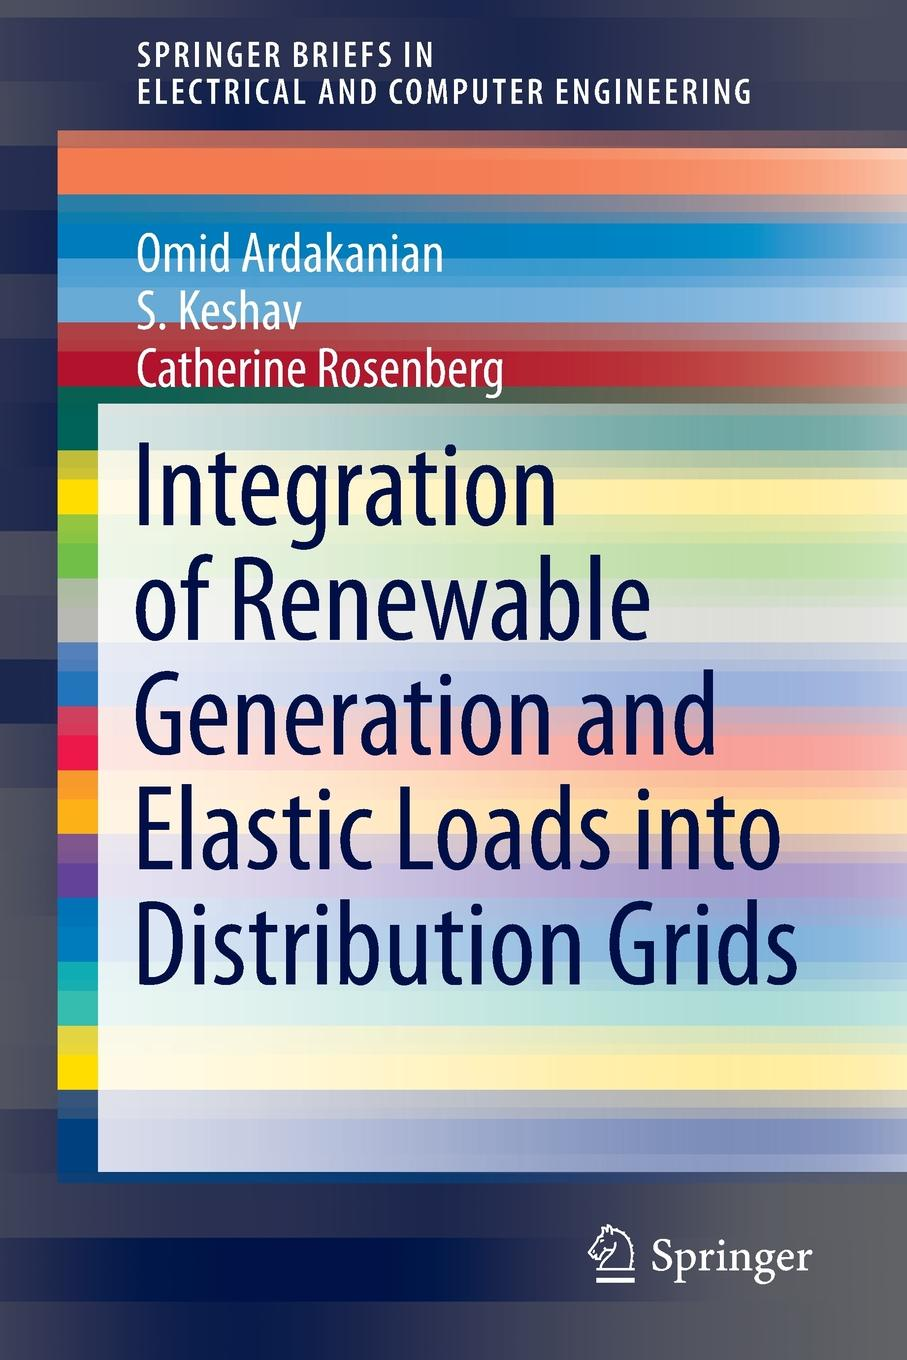 Omid Ardakanian, S. Keshav, Catherine Rosenberg Integration of Renewable Generation and Elastic Loads into Distribution Grids clemens mader integration of sustainability into universities good practices and benchmarking for integration